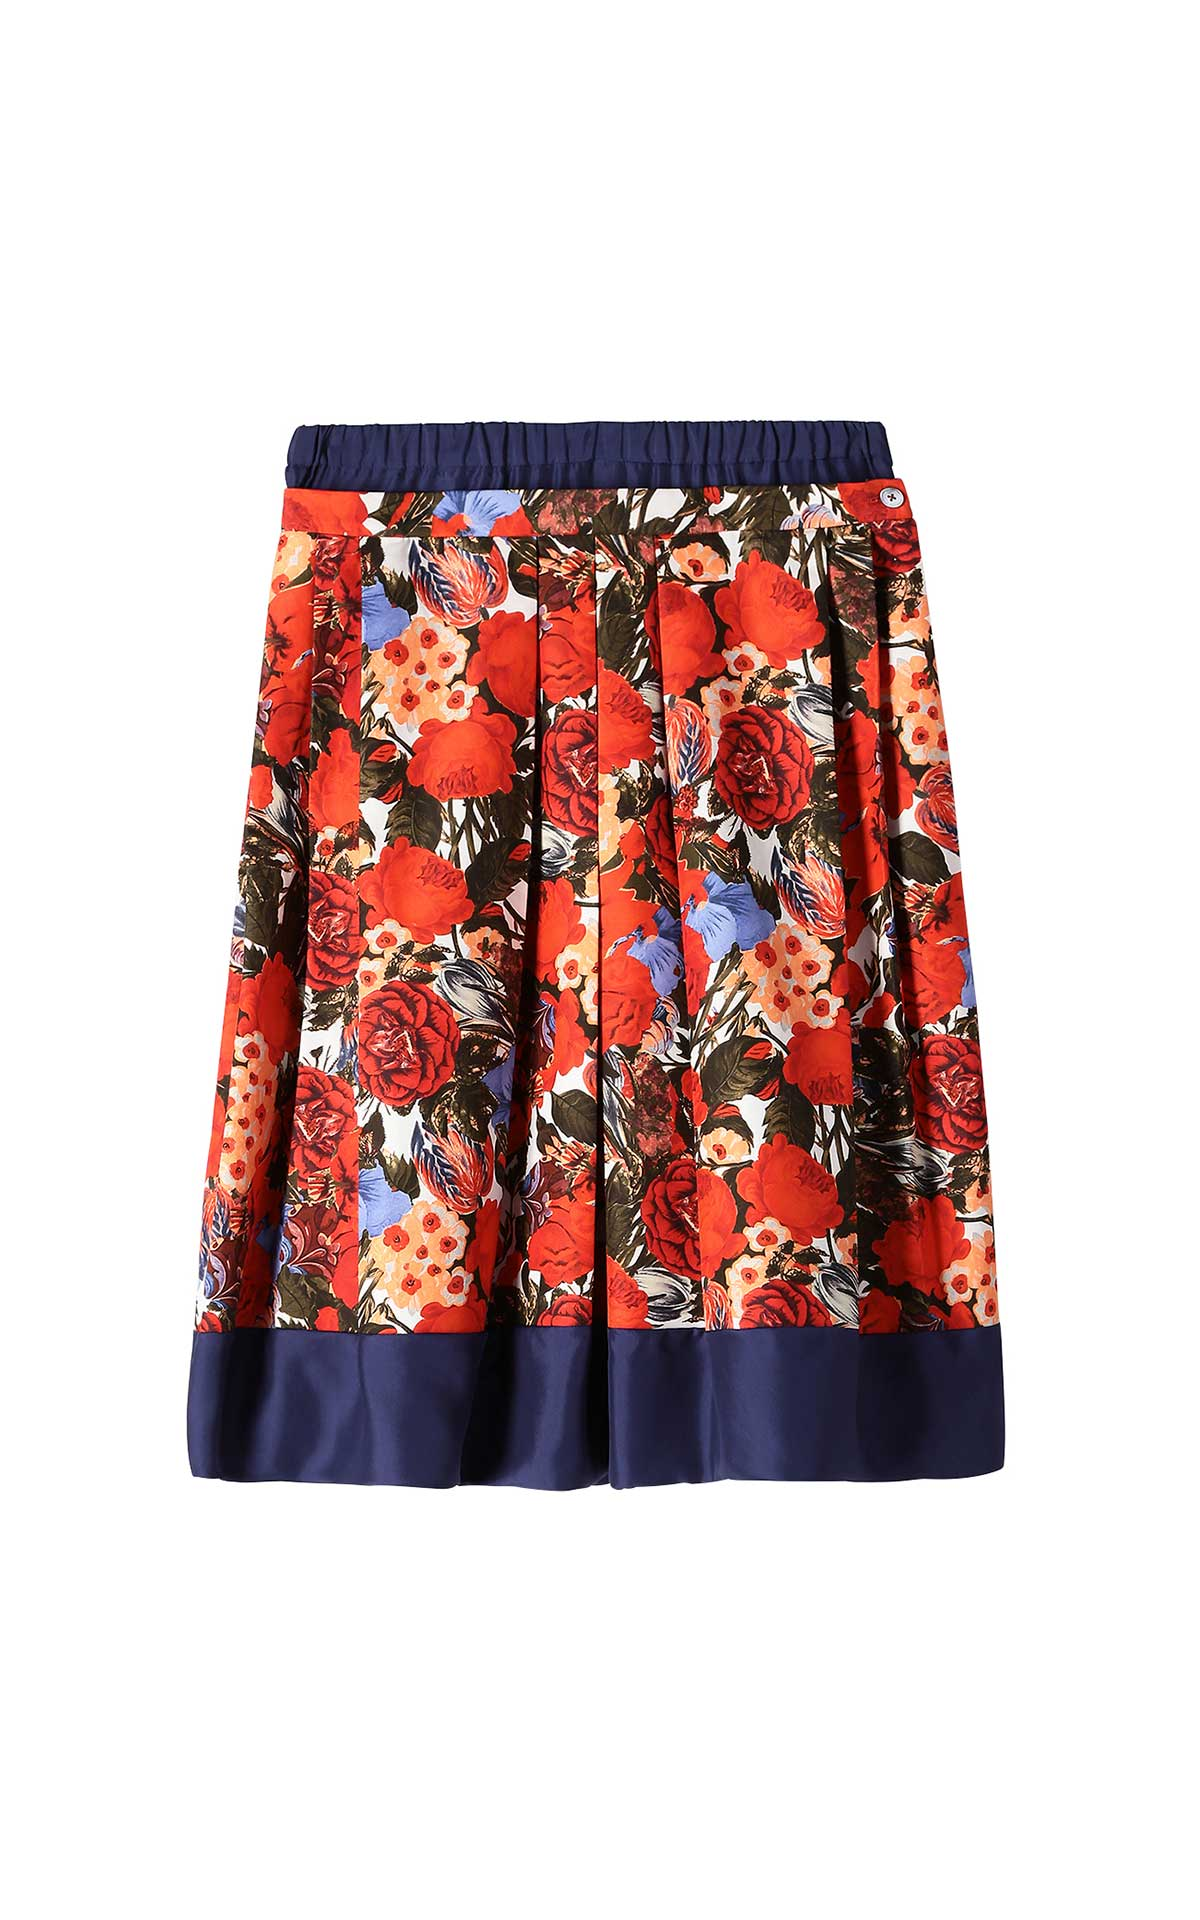 Red printed skirt with flowers for woman Marni